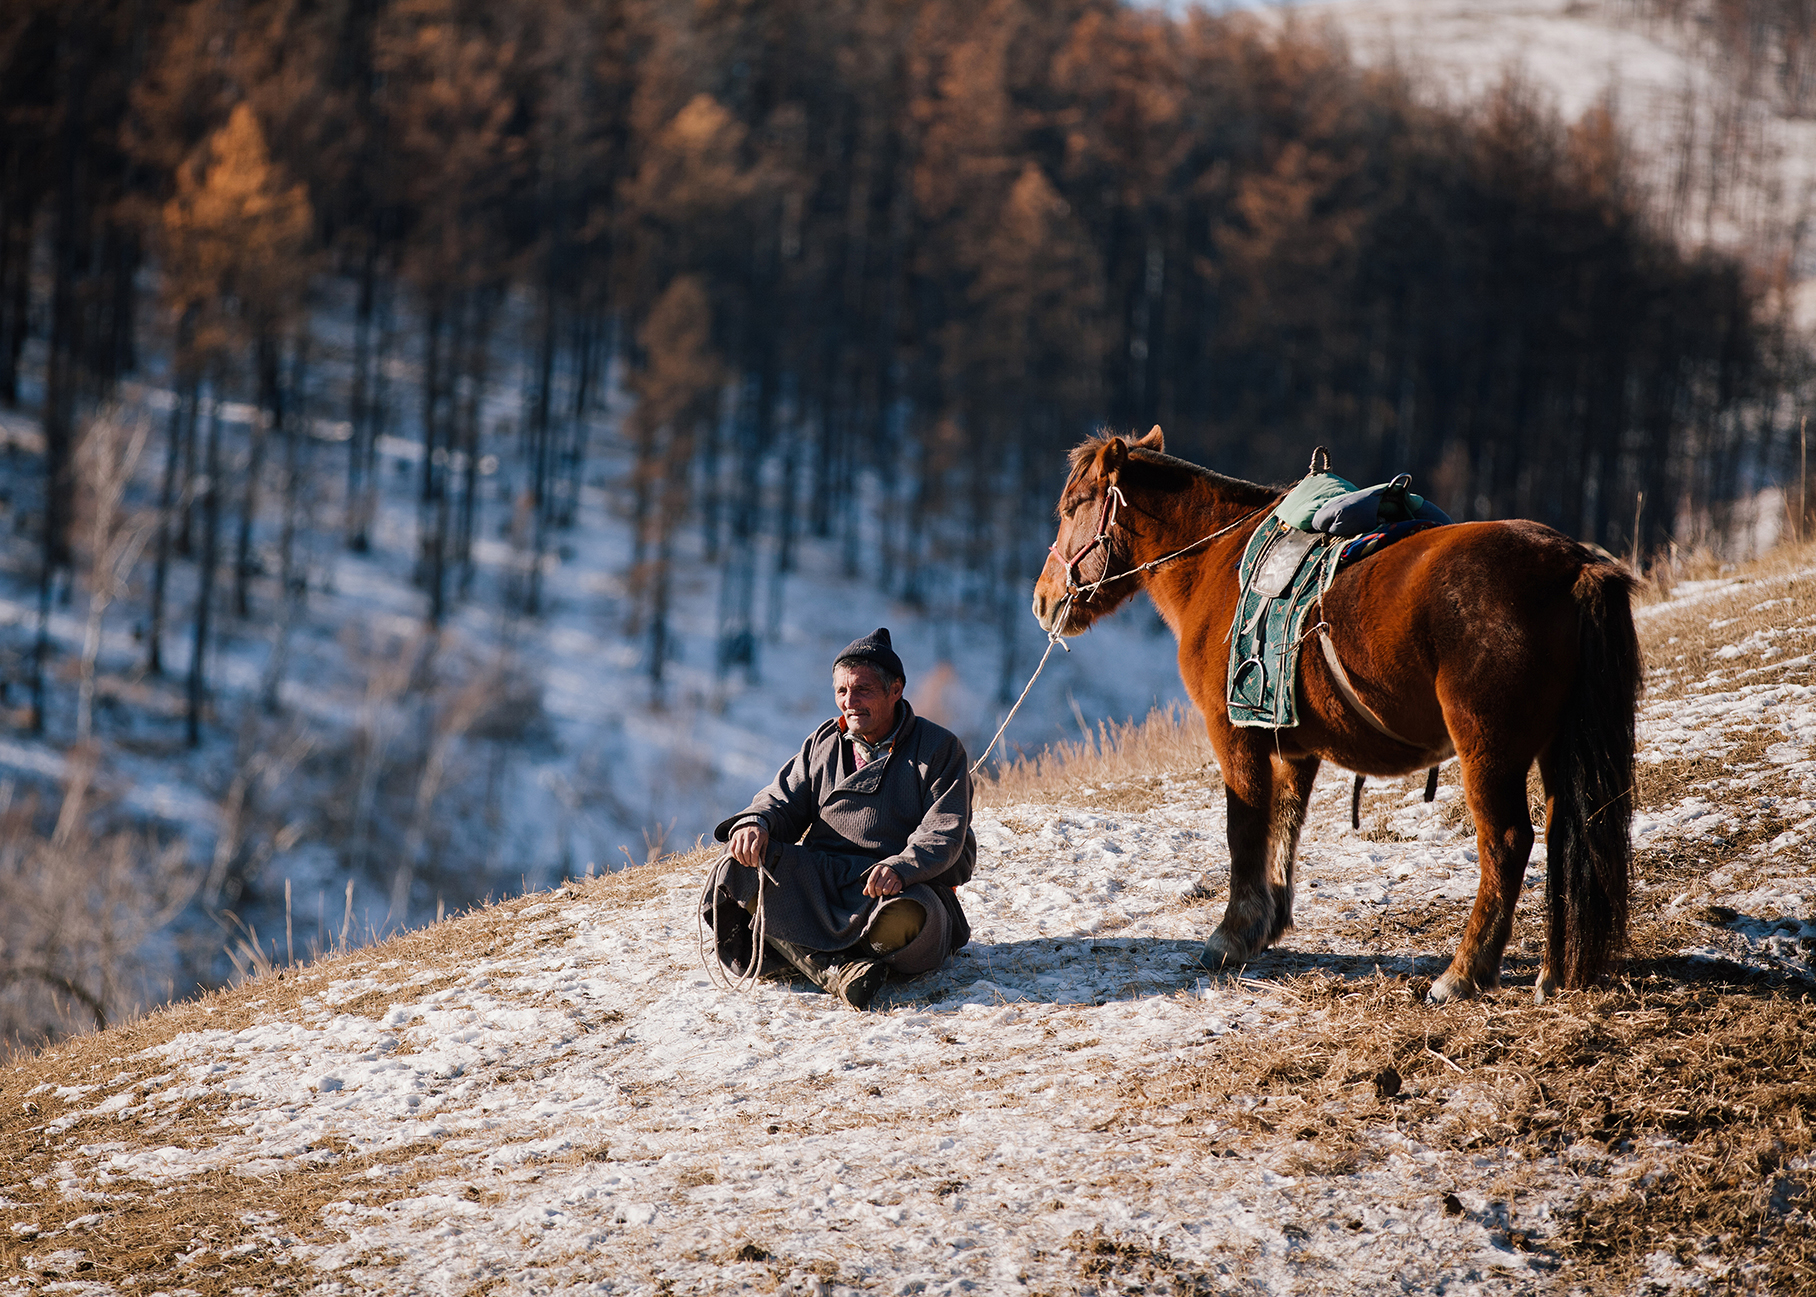 Man and his horse, Mongolia